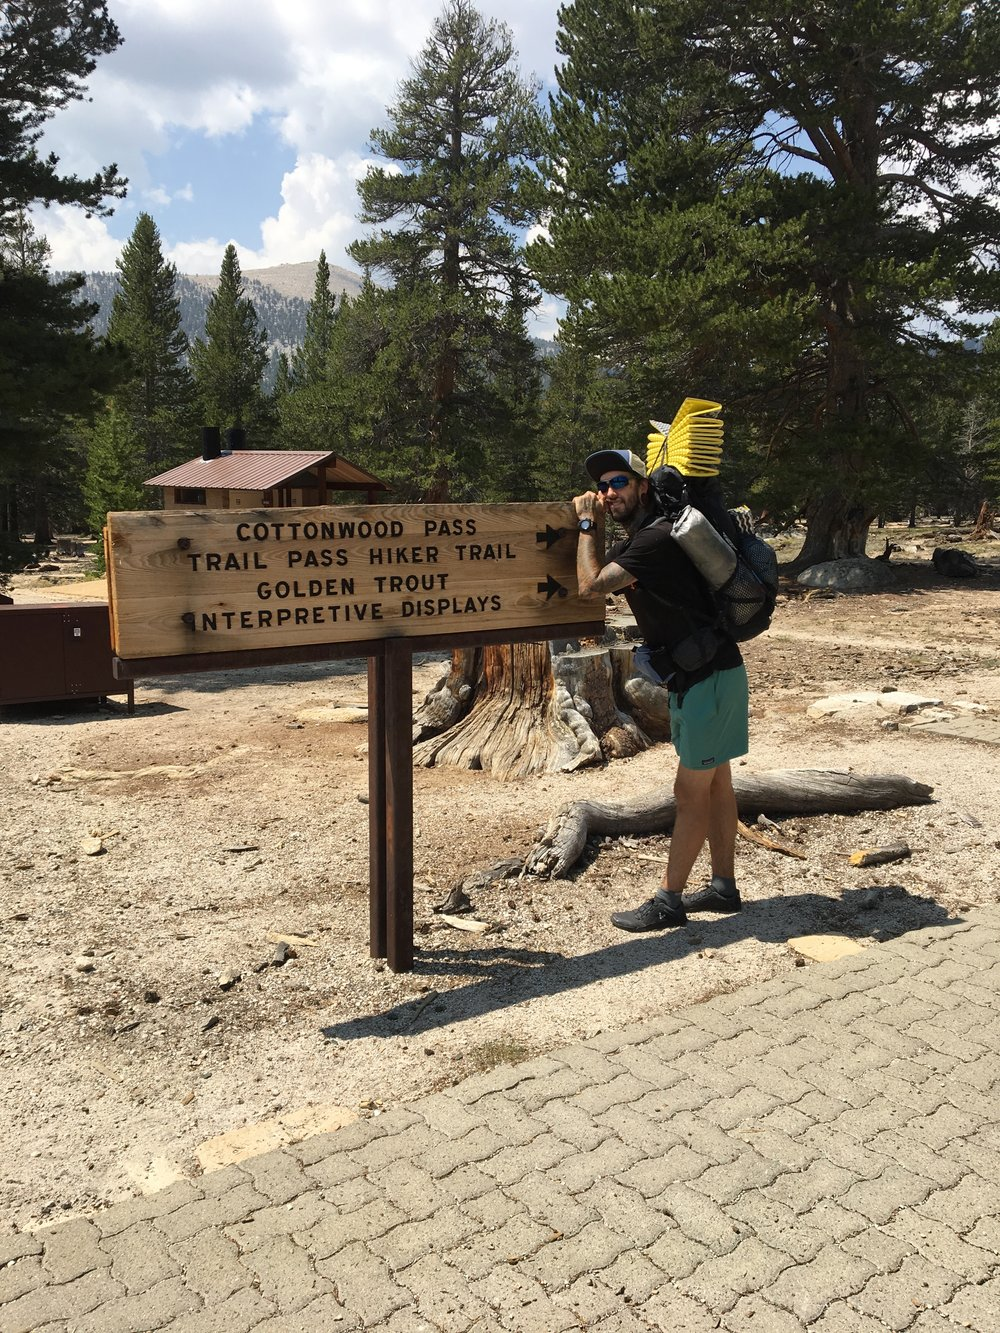 Cottonwood Pass Trailhead!